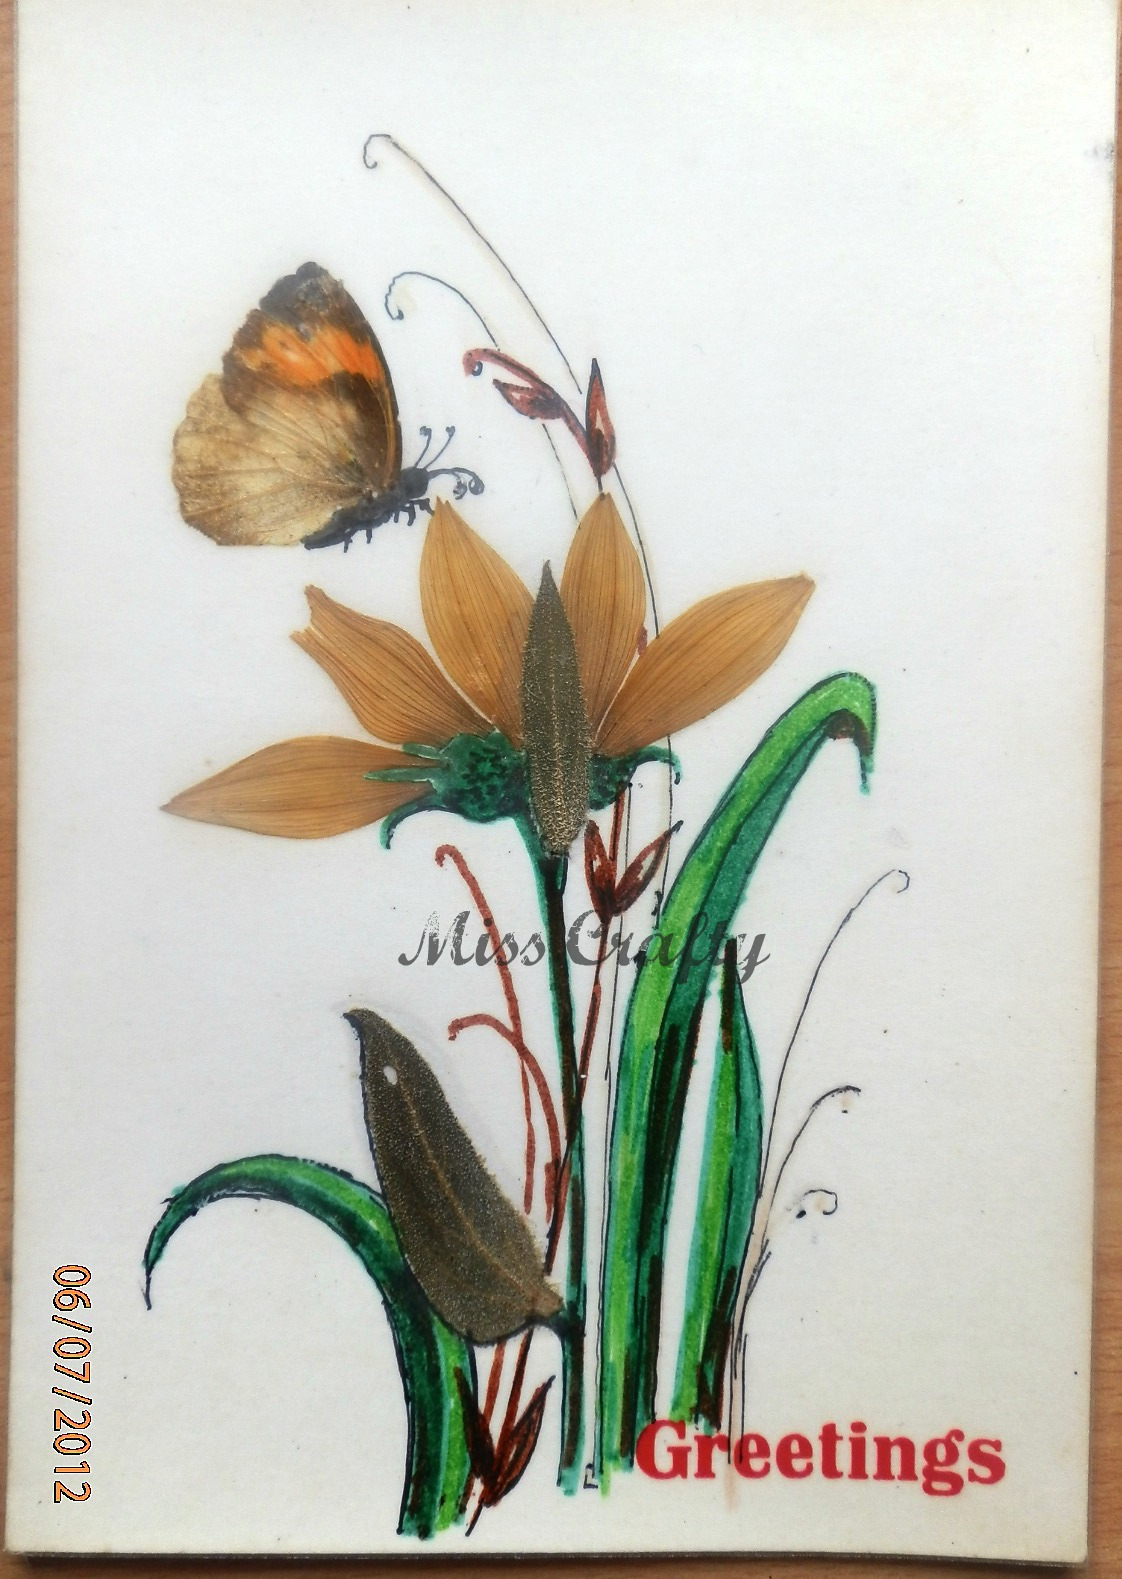 The Craft Gallery Pressed Flowers Greeting Cards Part 2